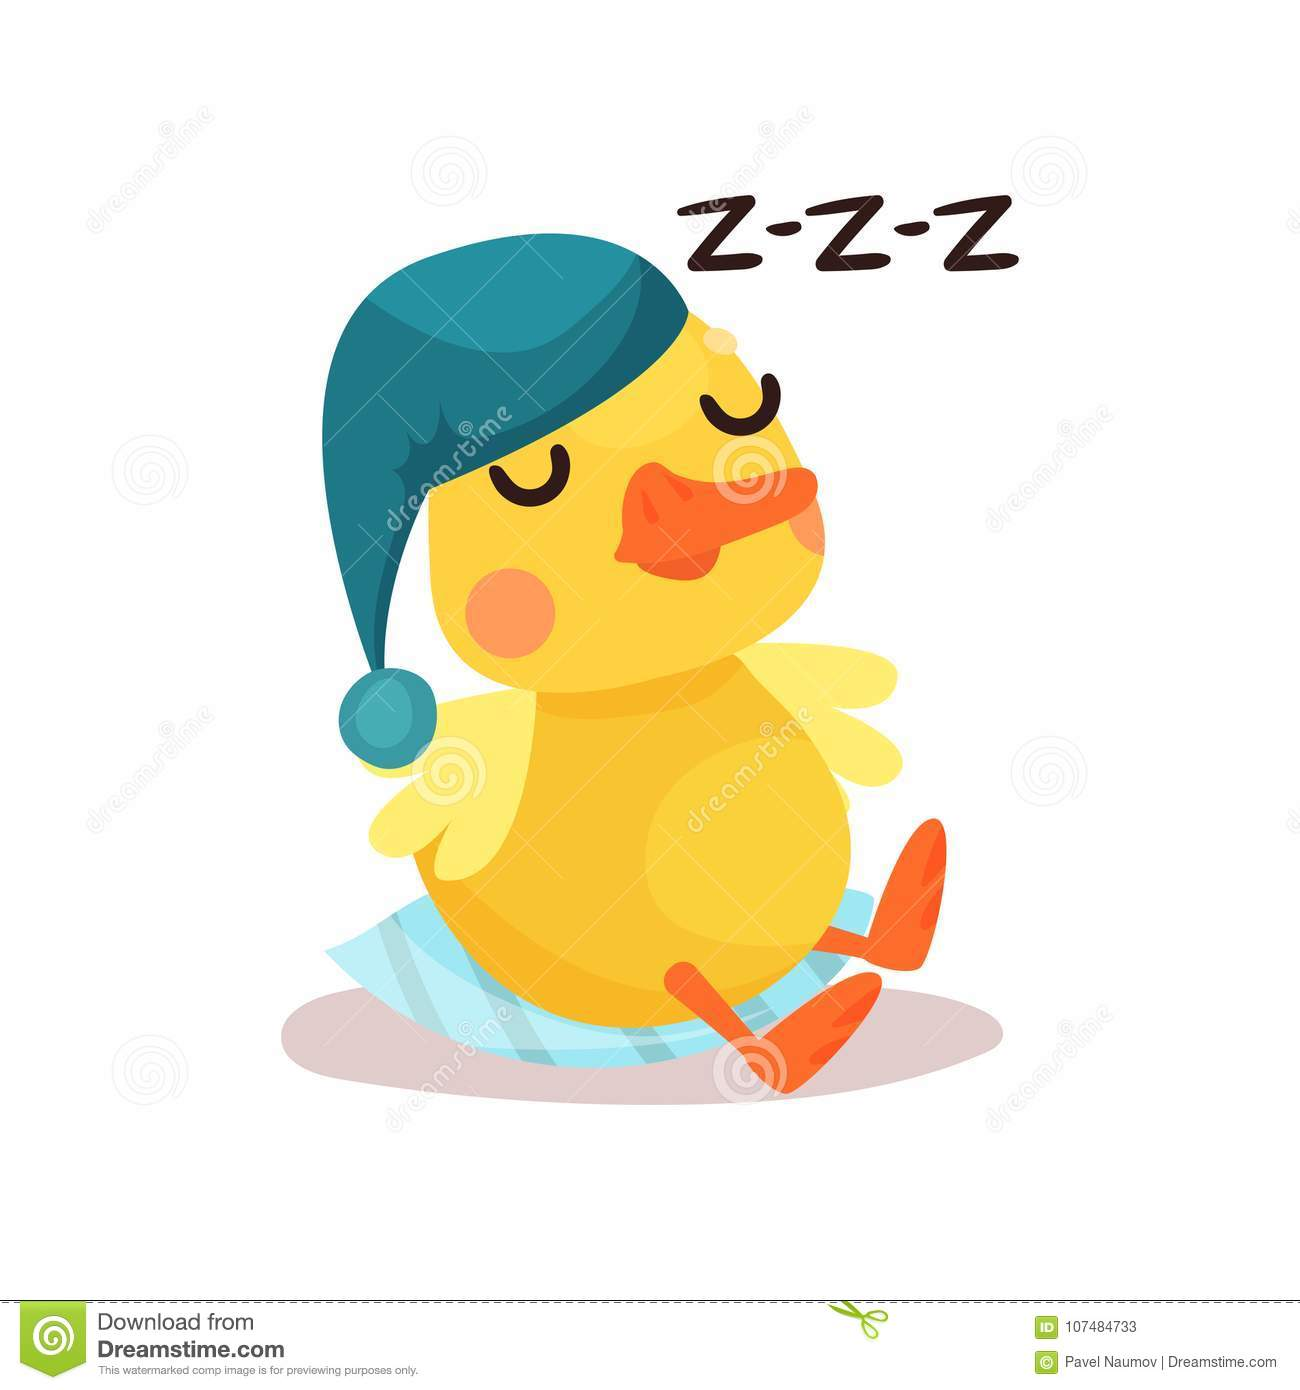 cute little yellow duck chick character in a blue hat sleeping